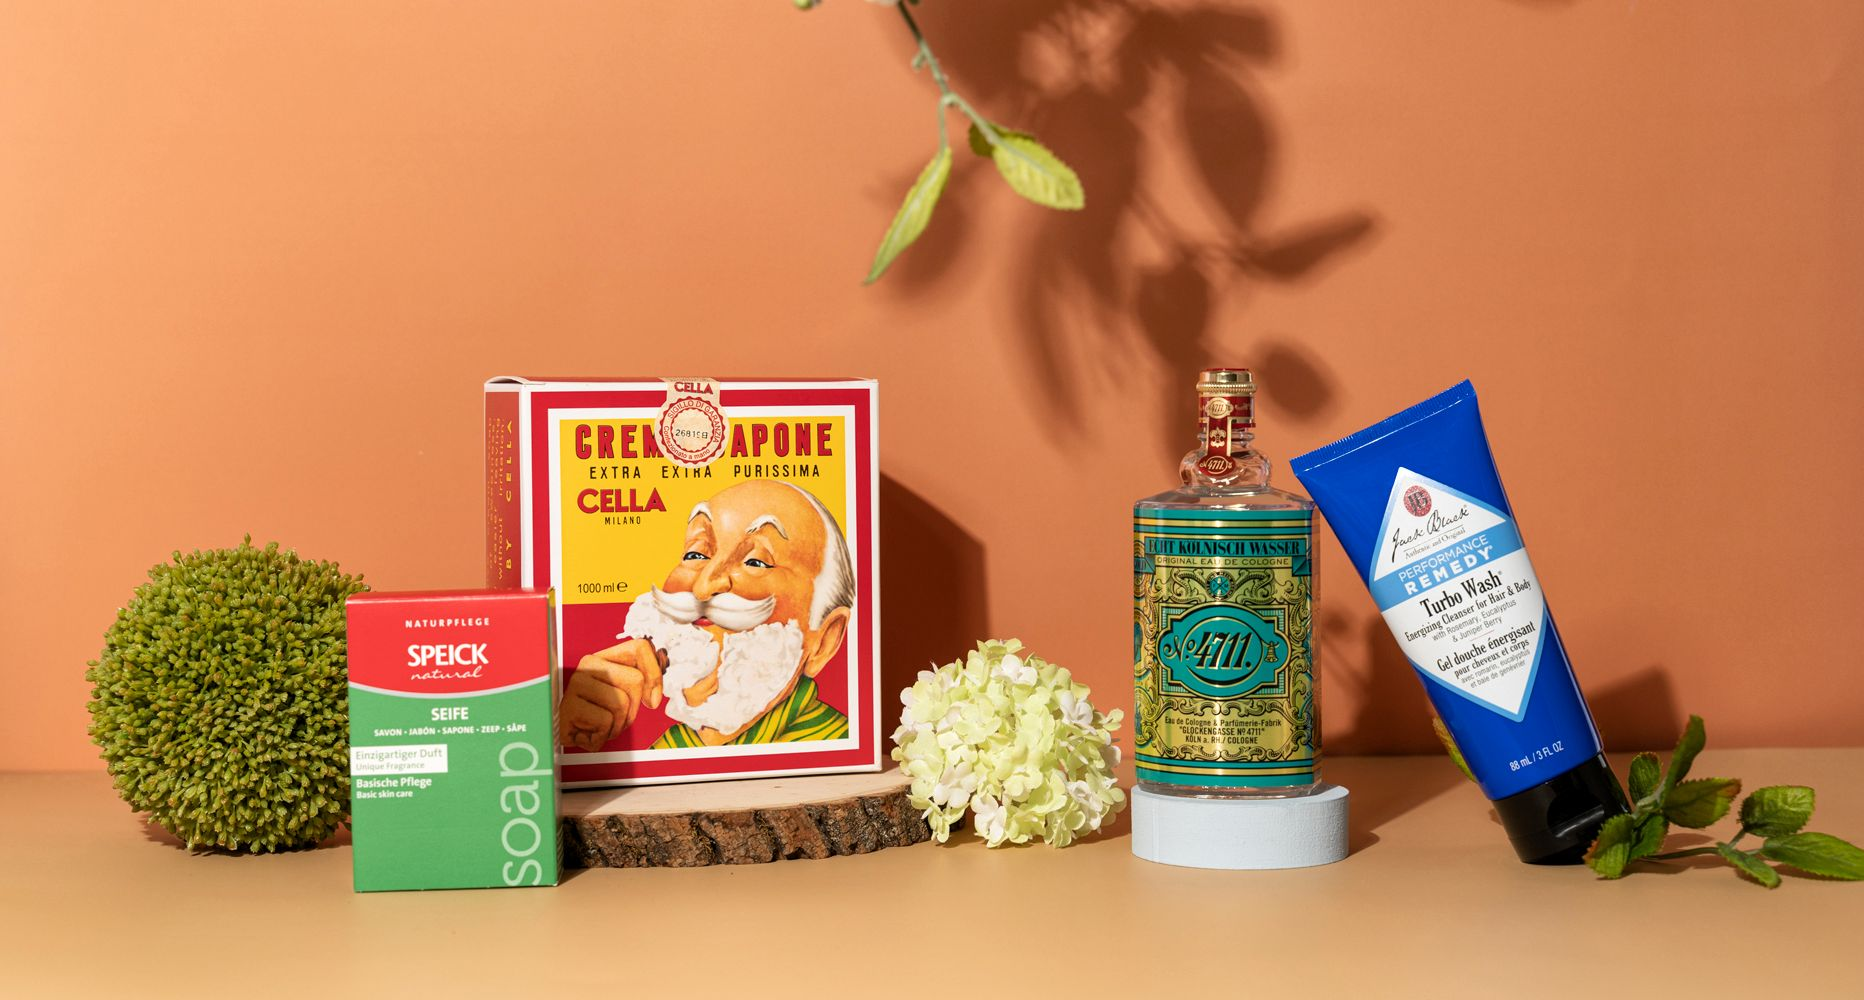 Father's Day Gifts - Classics Under $40